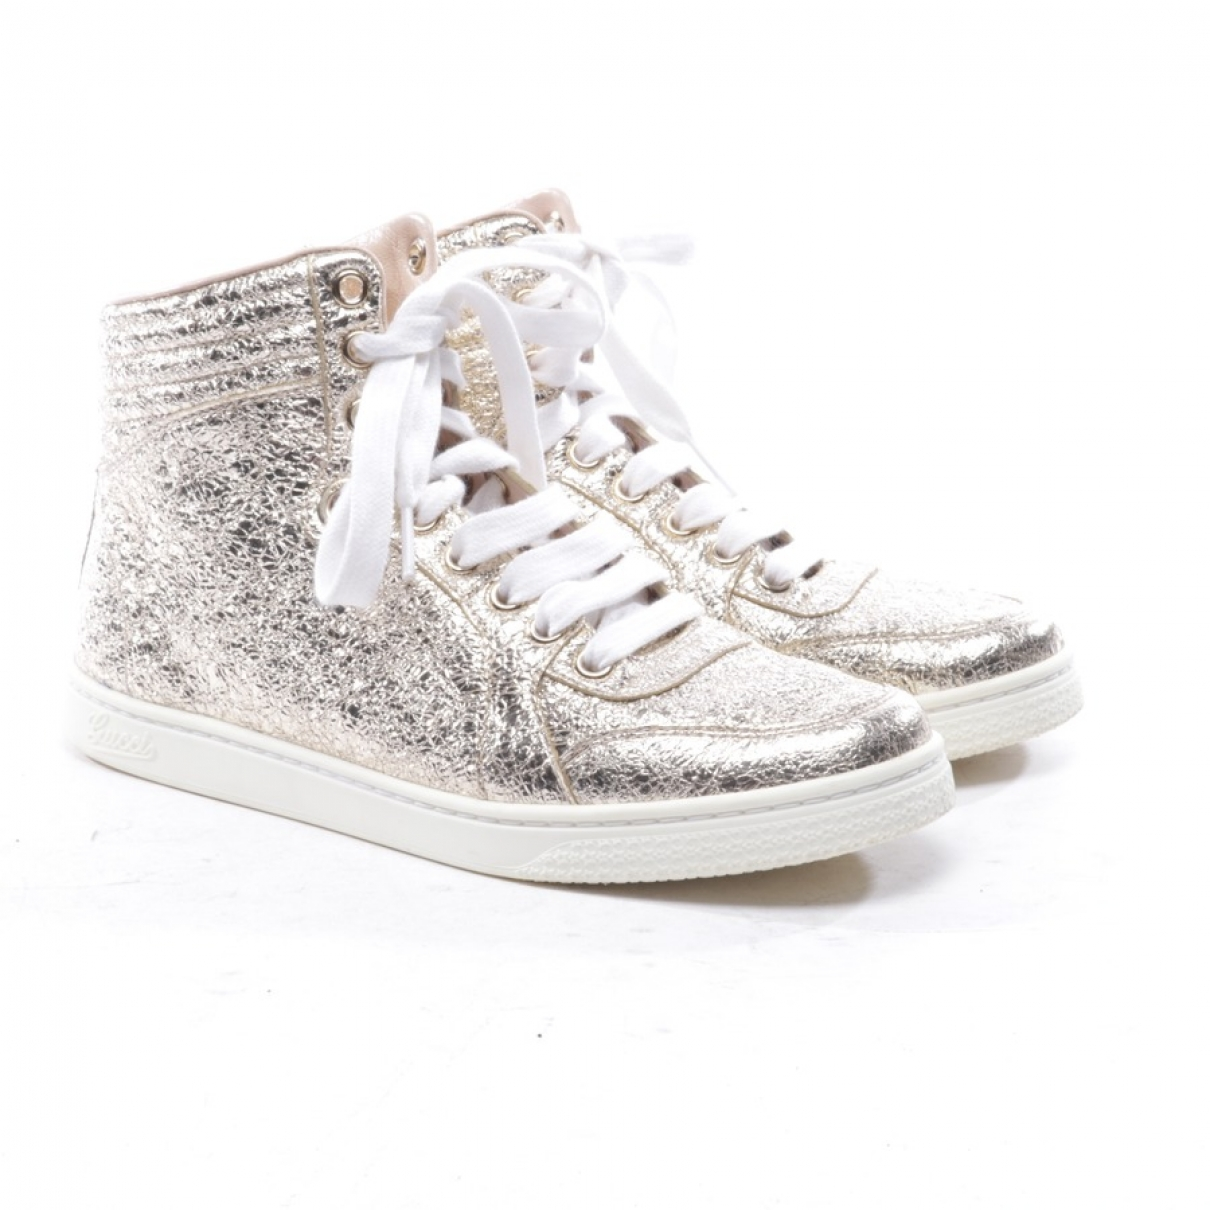 Gucci \N Sneakers in  Silber Leder